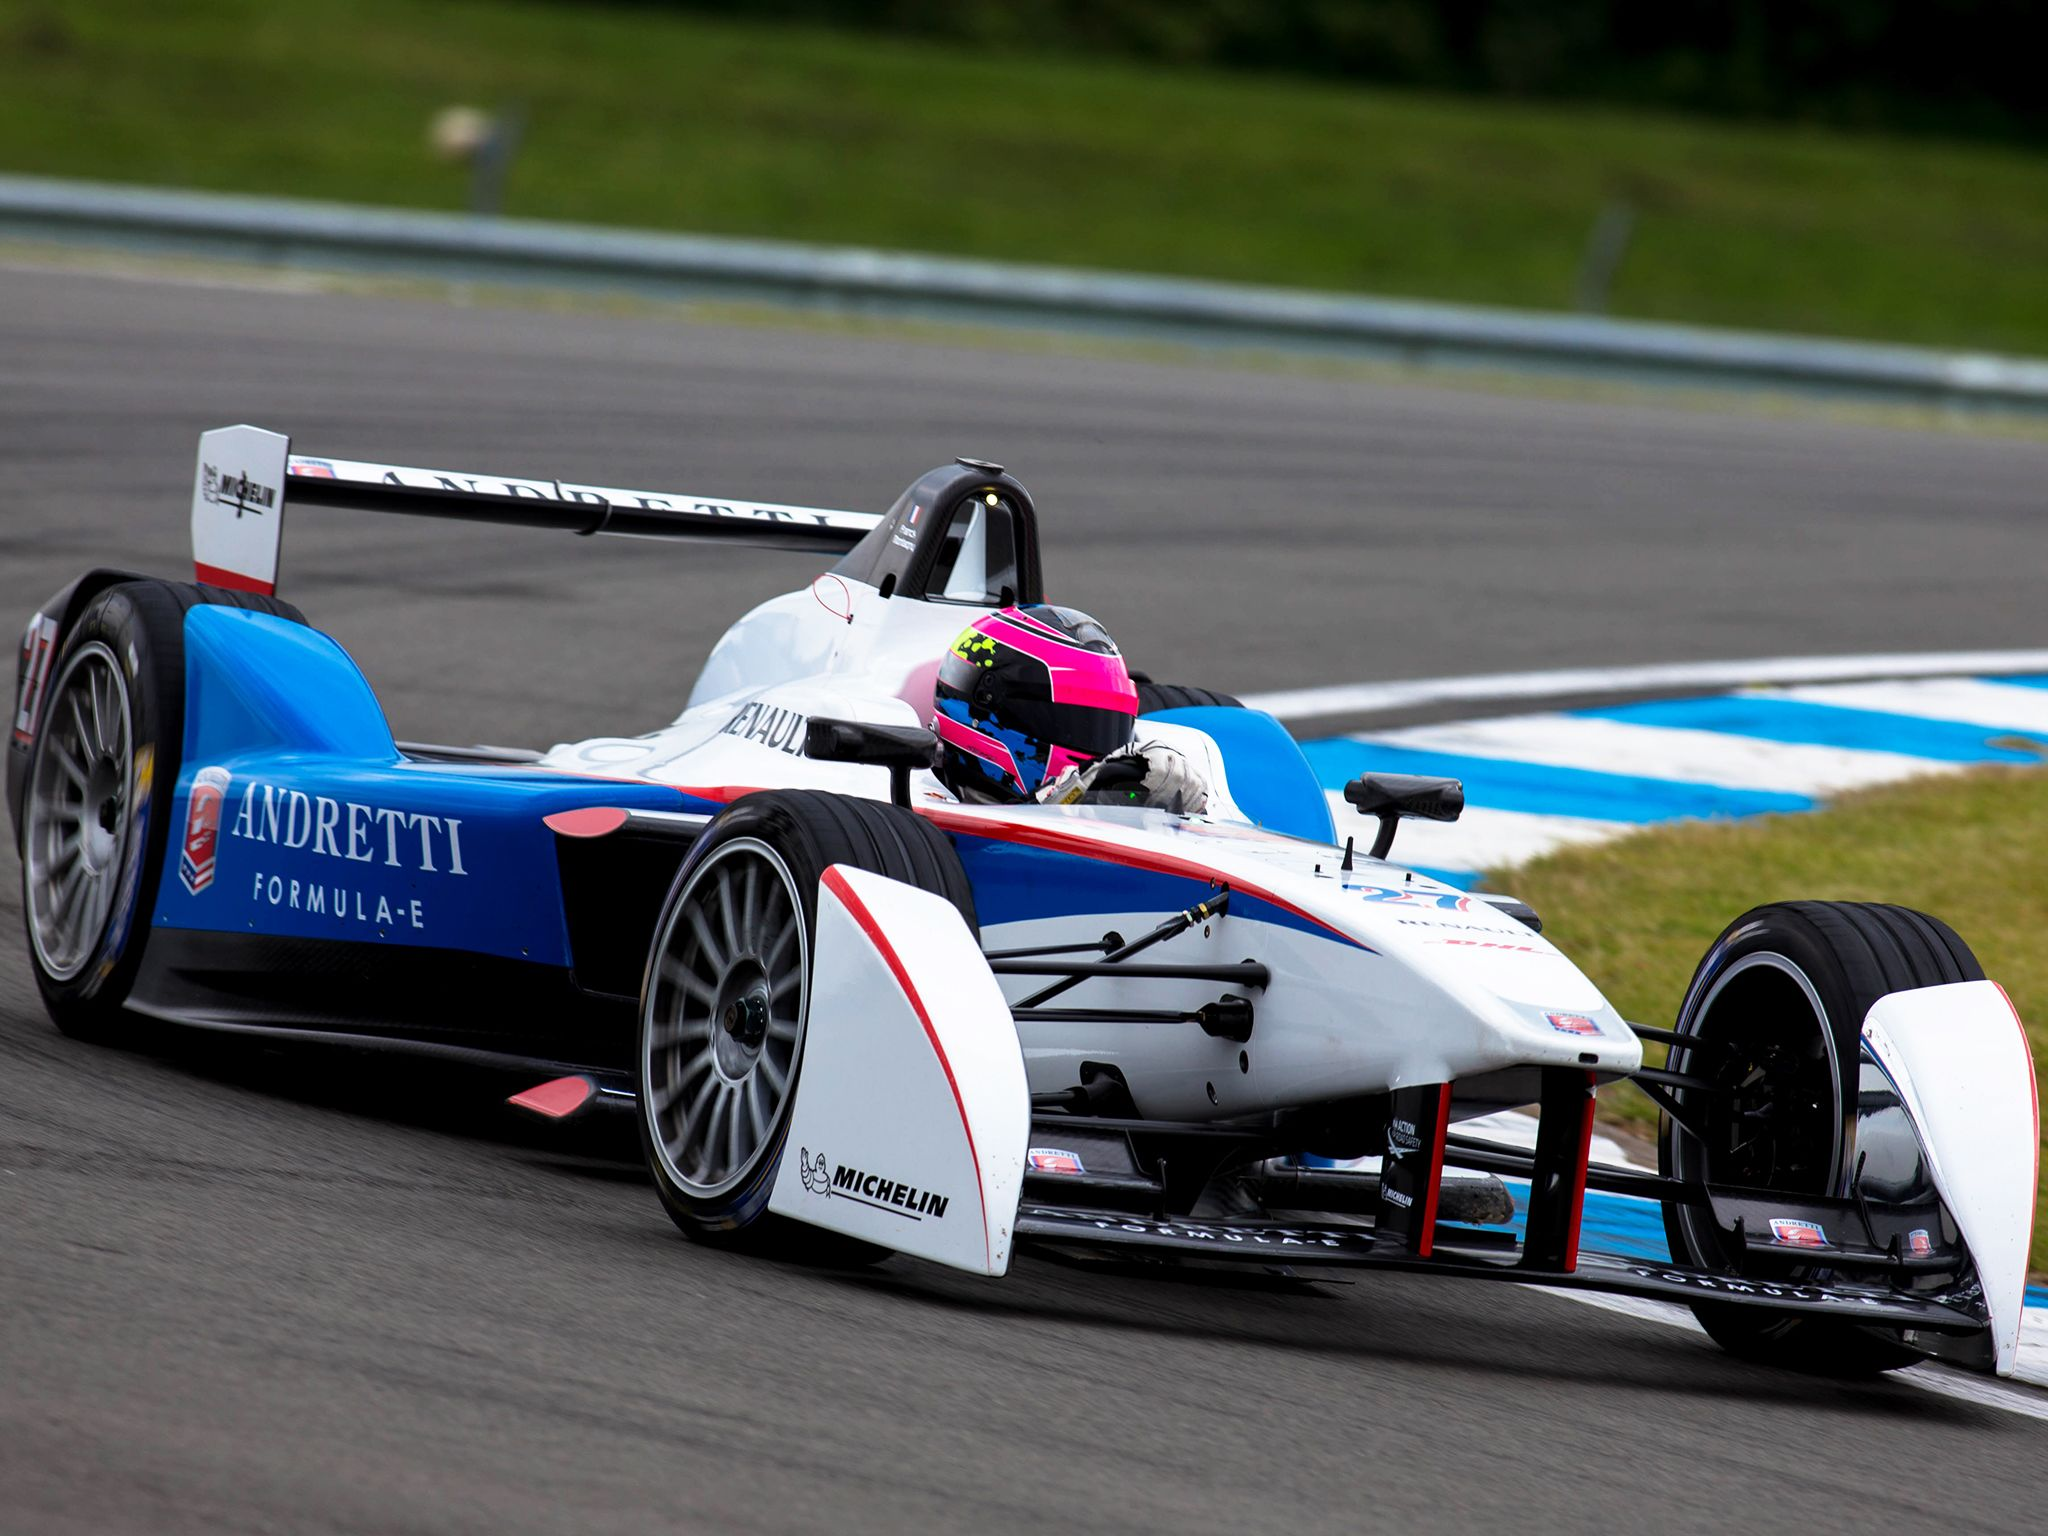 Donington, UK: Andretti car on the track. This image is from Formula E: Racing Recharged. [ΦΩΤΟΓΡΑΦΙΑ ΤΗΣ ΗΜΕΡΑΣ - ΣΕΠΤΕΜΒΡΙΟΥ 2014]